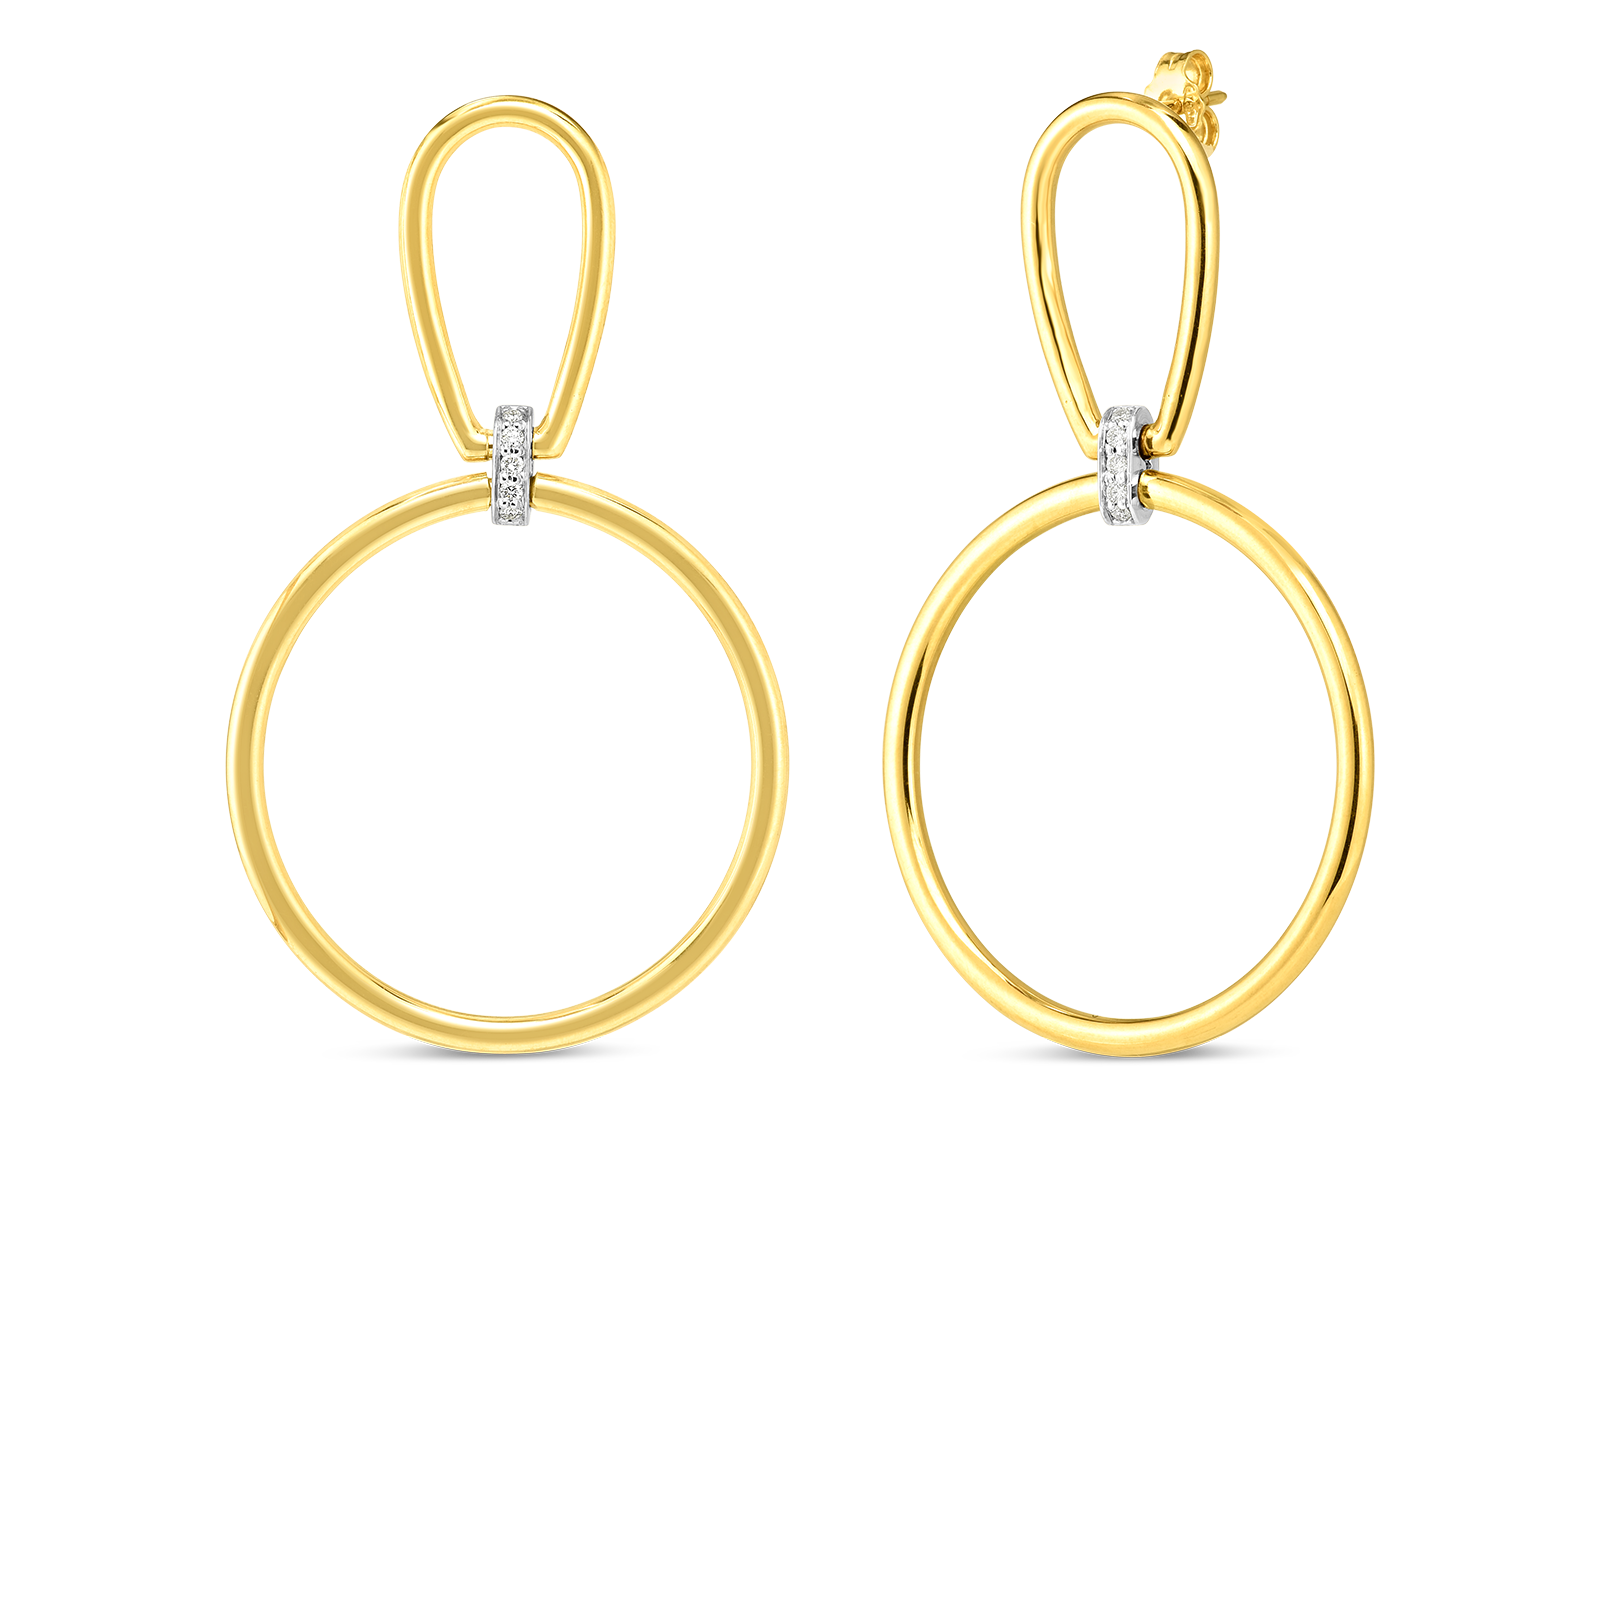 18k open stirrup & circle drop earring with diamond accent